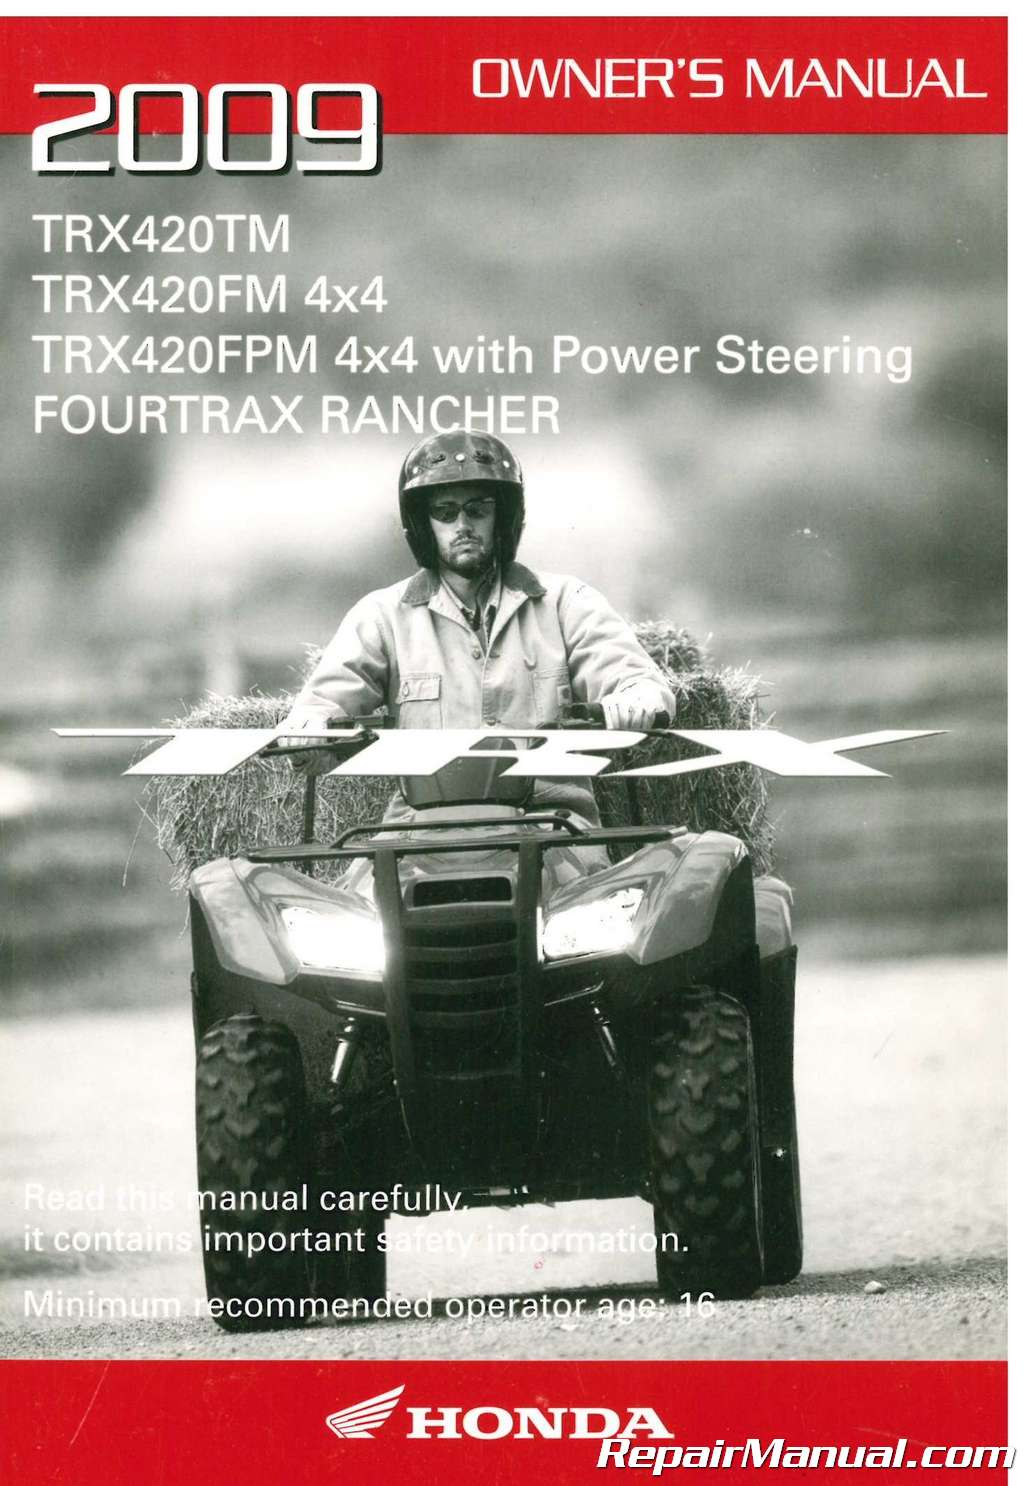 2009 Honda Trx420 Fourtrax Rancher 4 4 Owners Manual